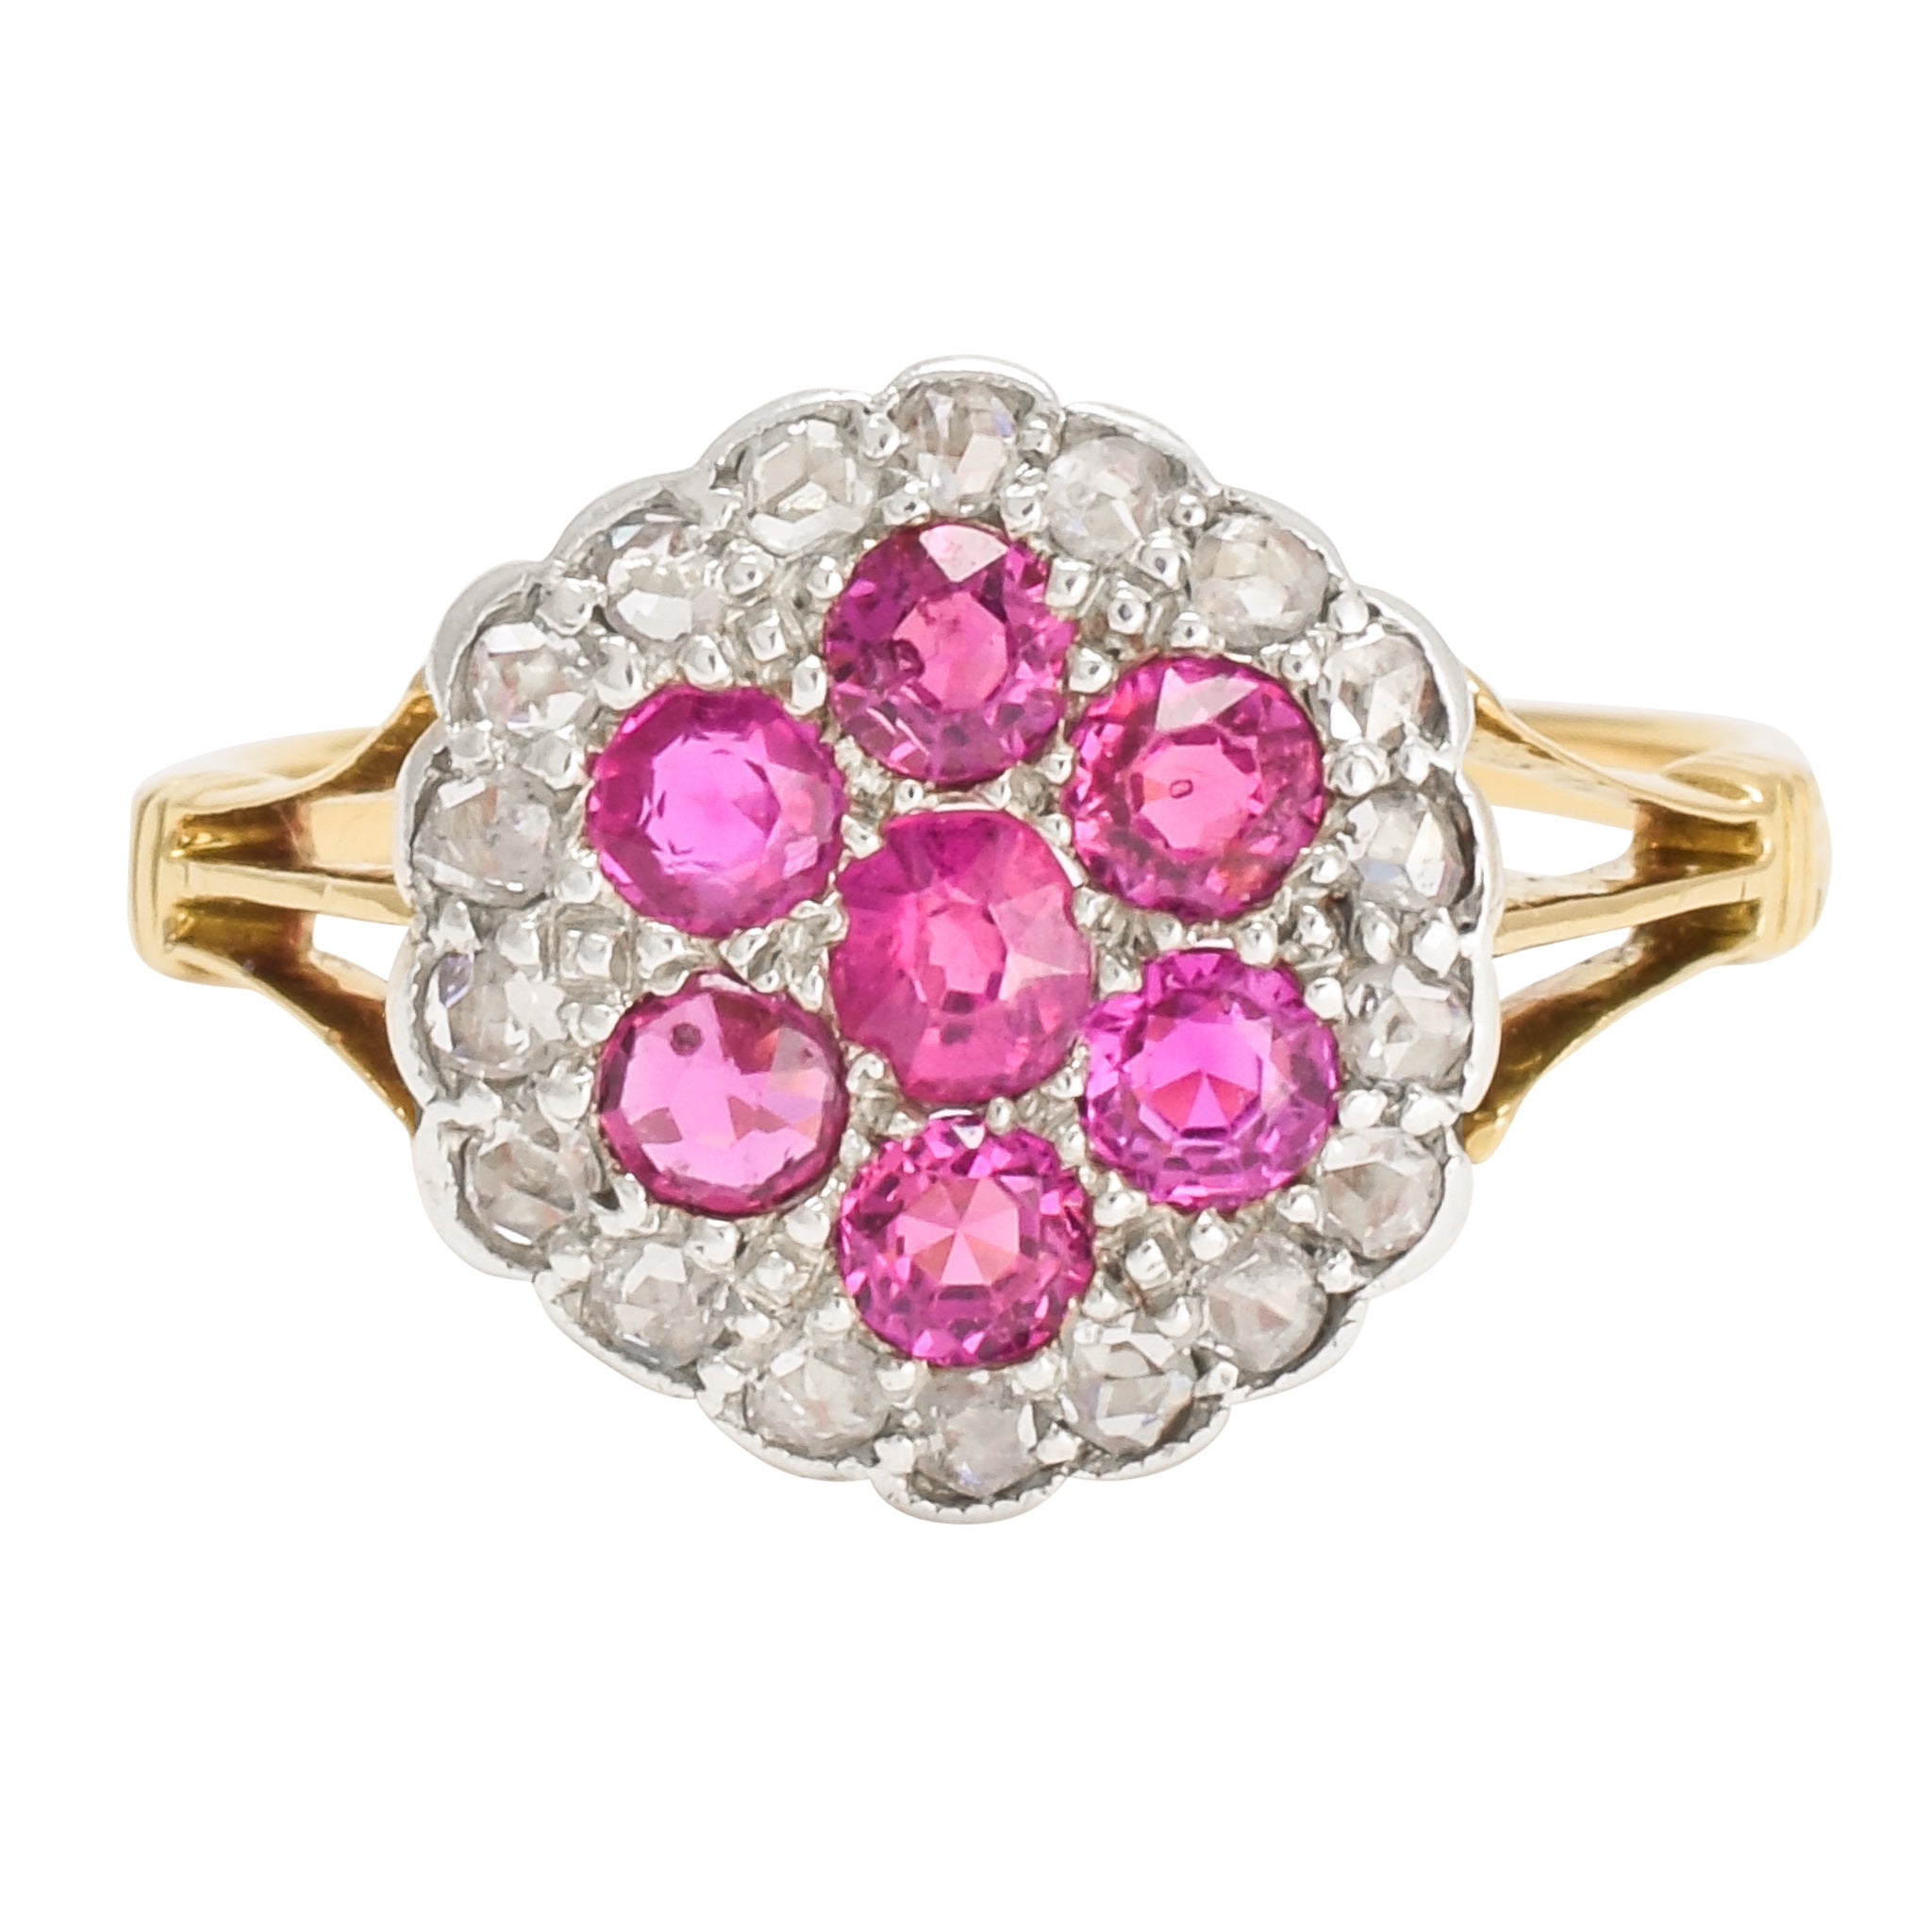 Antique Ruby And Diamond Cluster Ring For Sale at 1stdibs